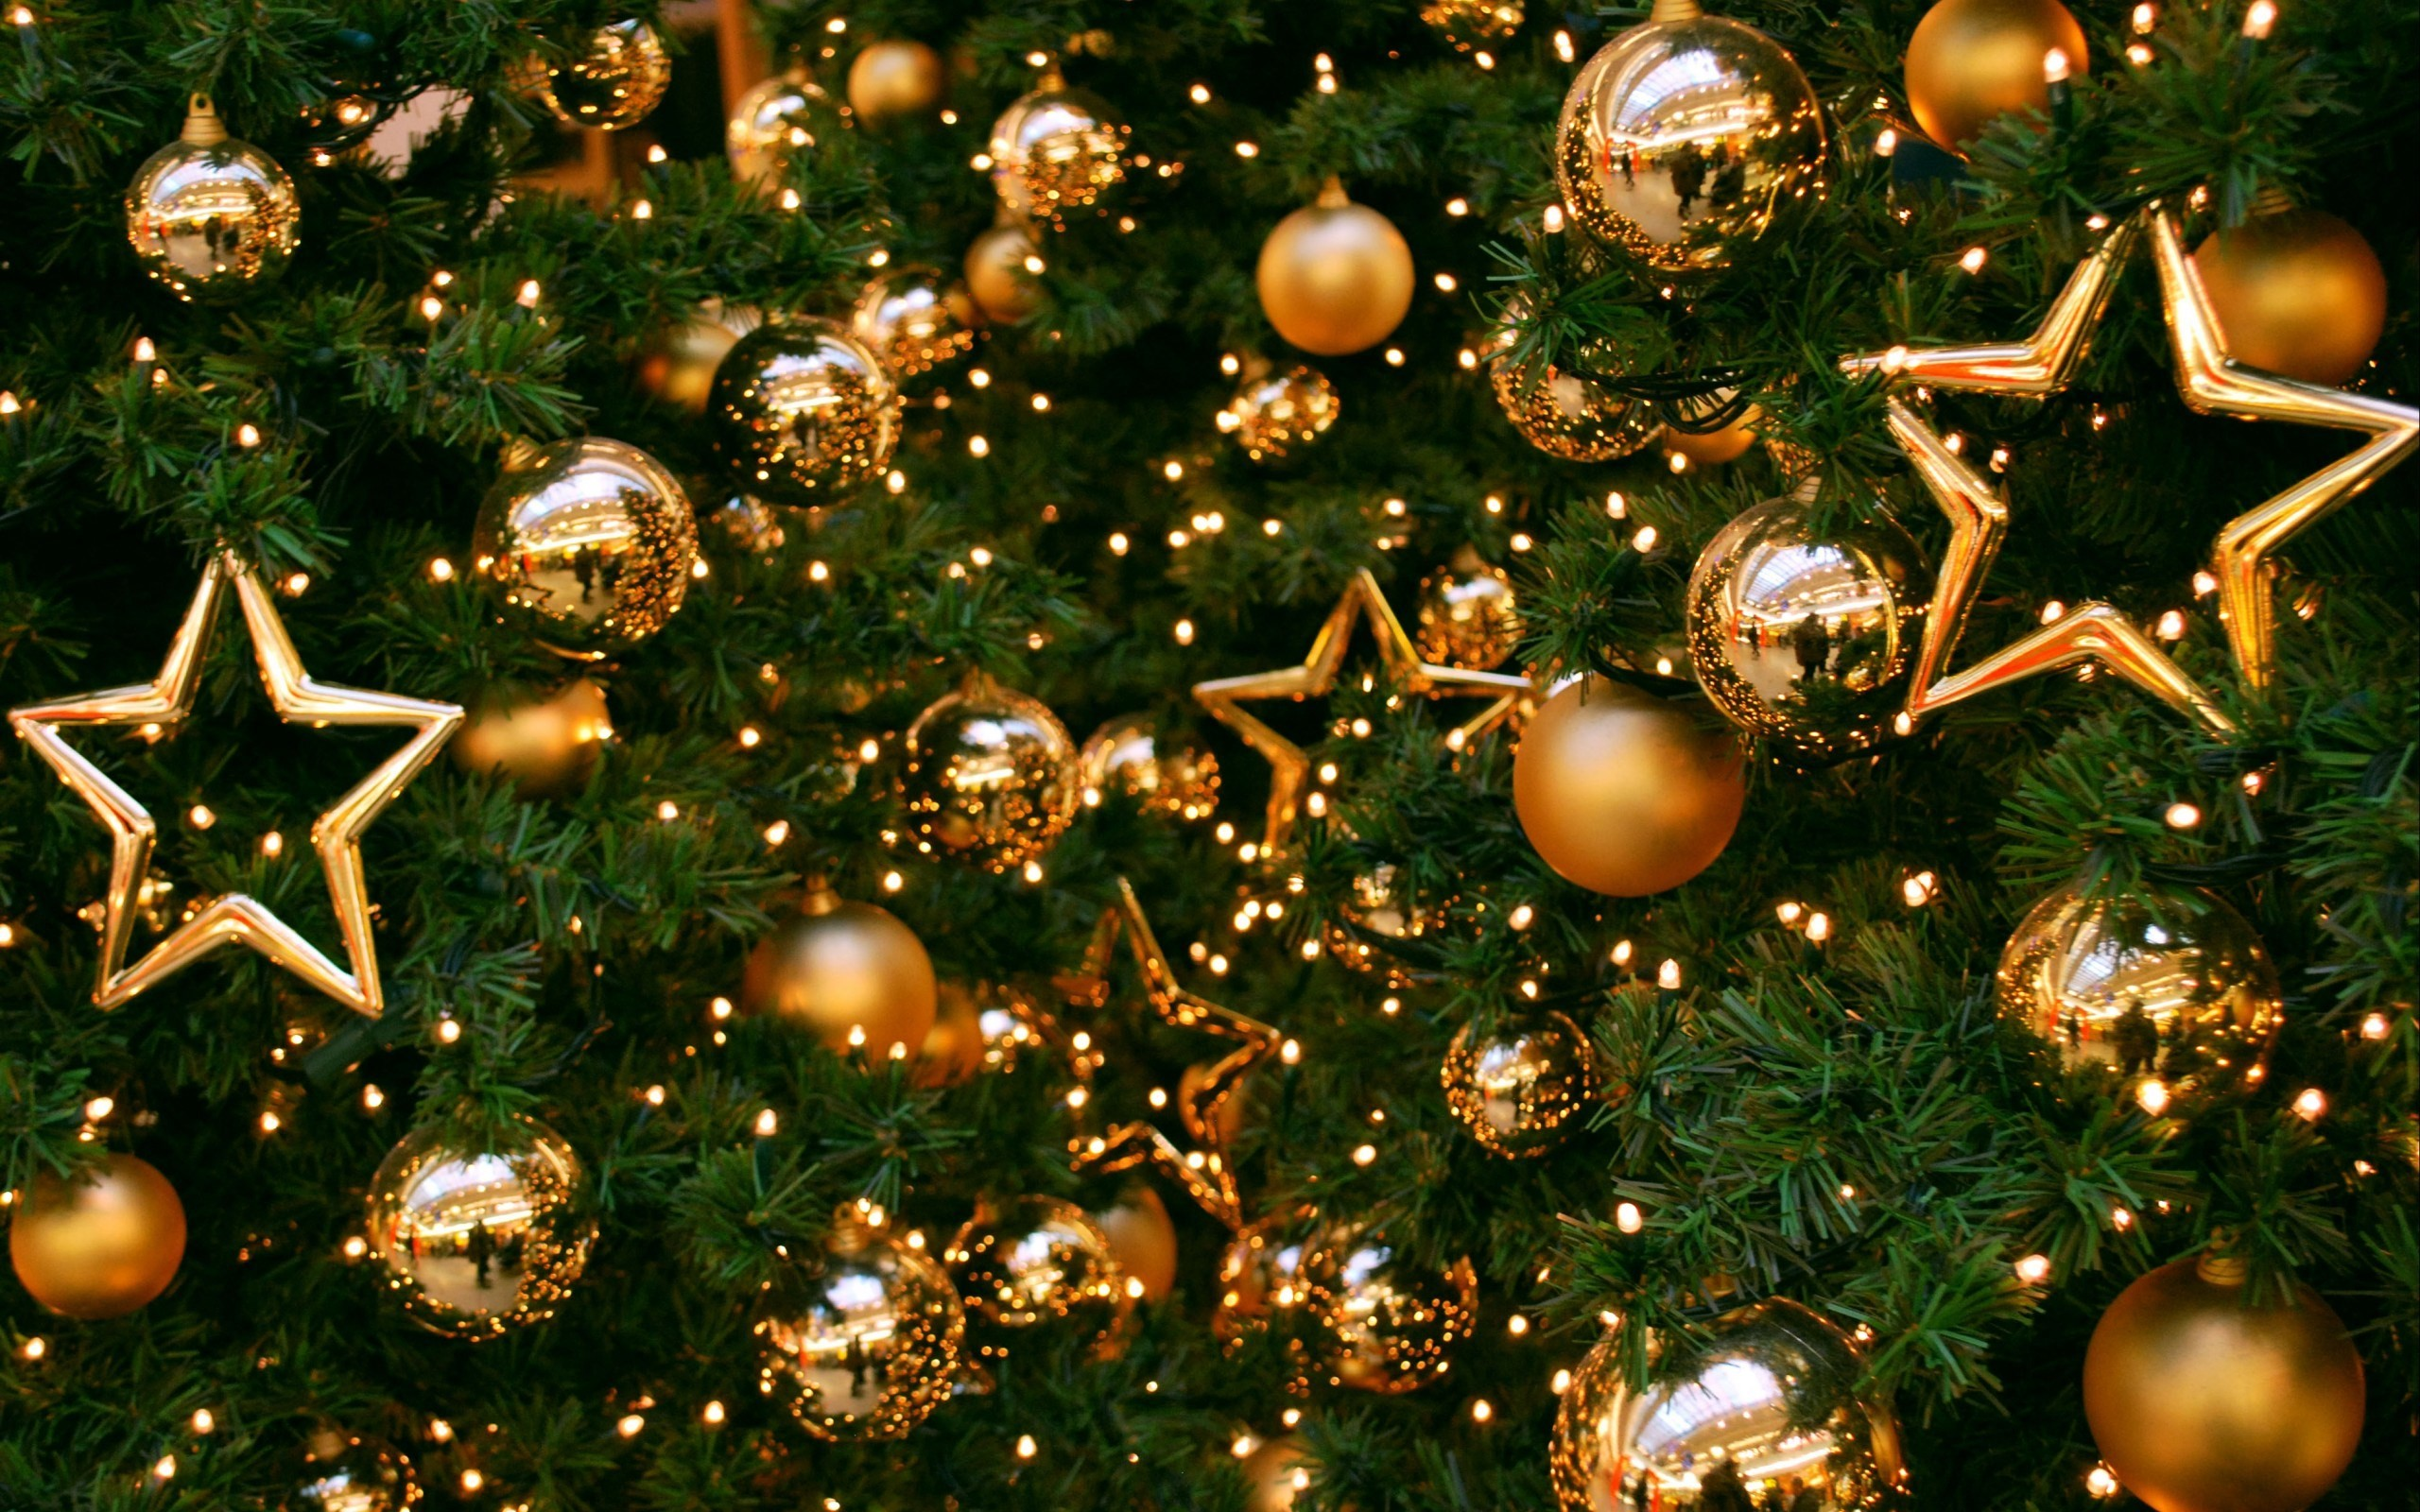 Best Christmas Tree Wallpaper - Christmas Tree New Year , HD Wallpaper & Backgrounds